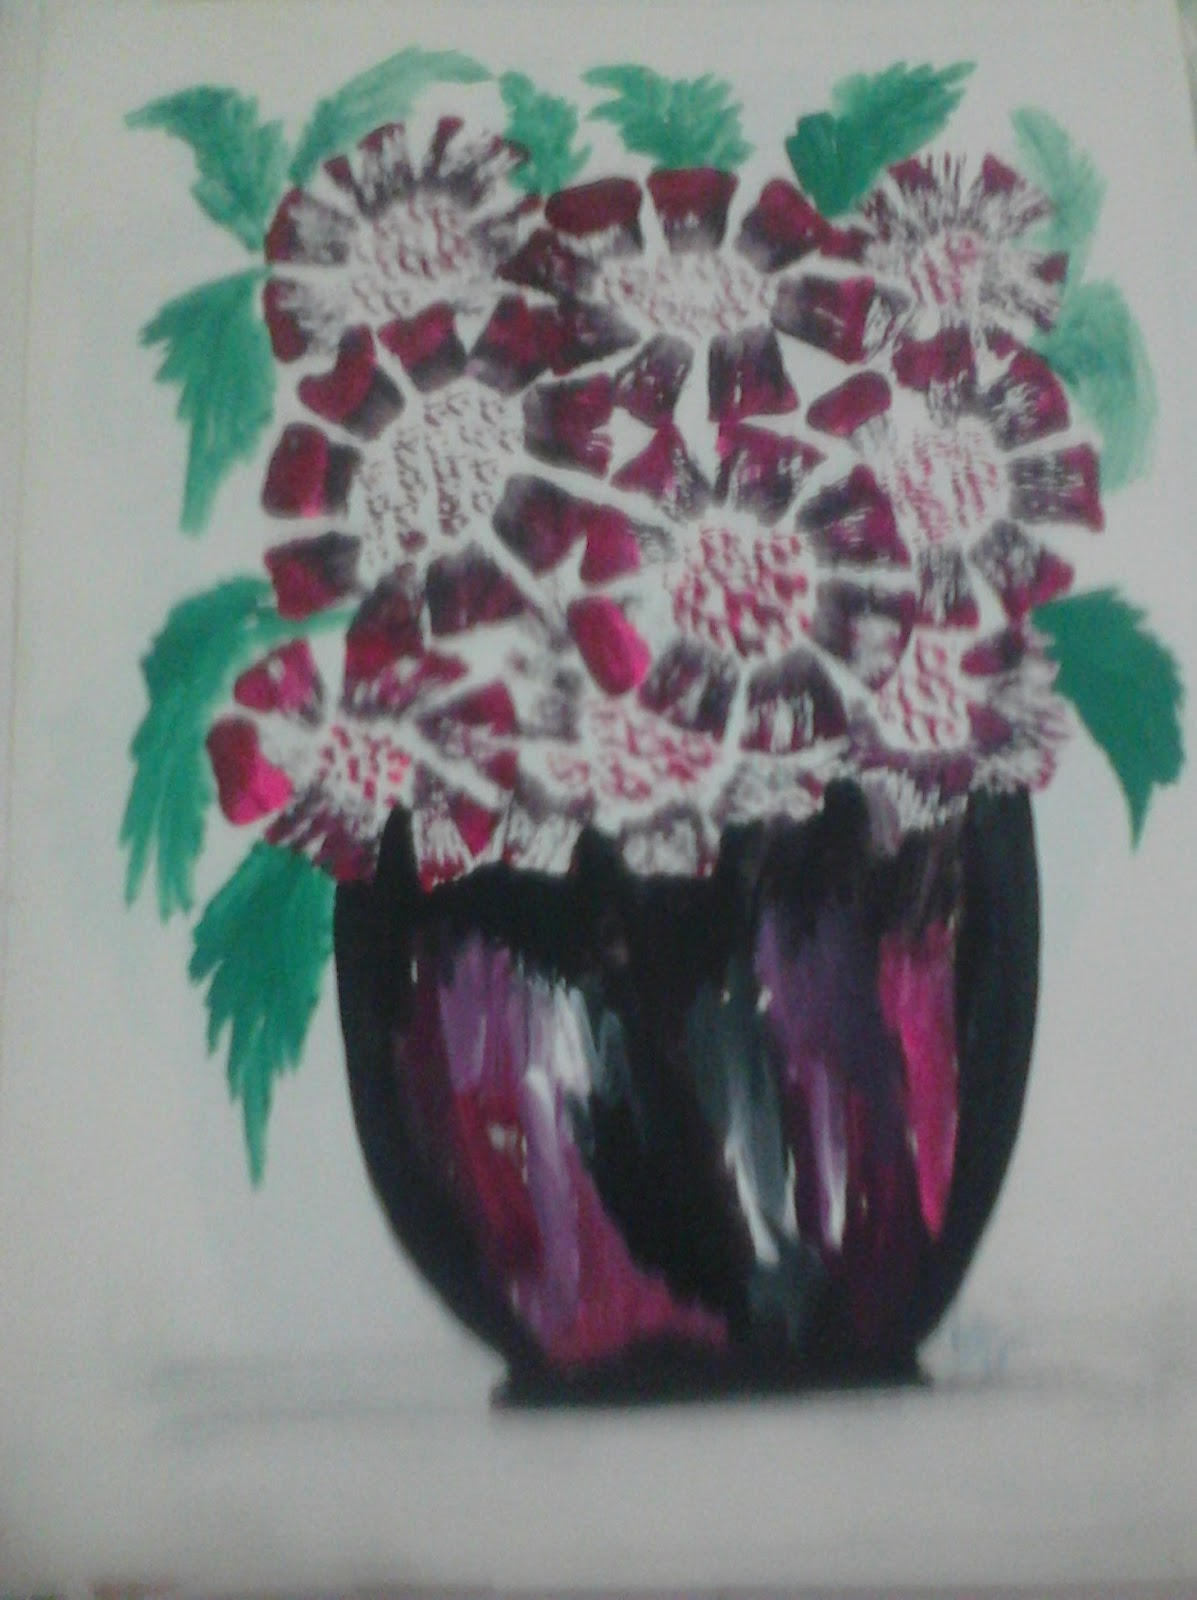 Razarts Abstract Flowers And Vases Paintings In Water